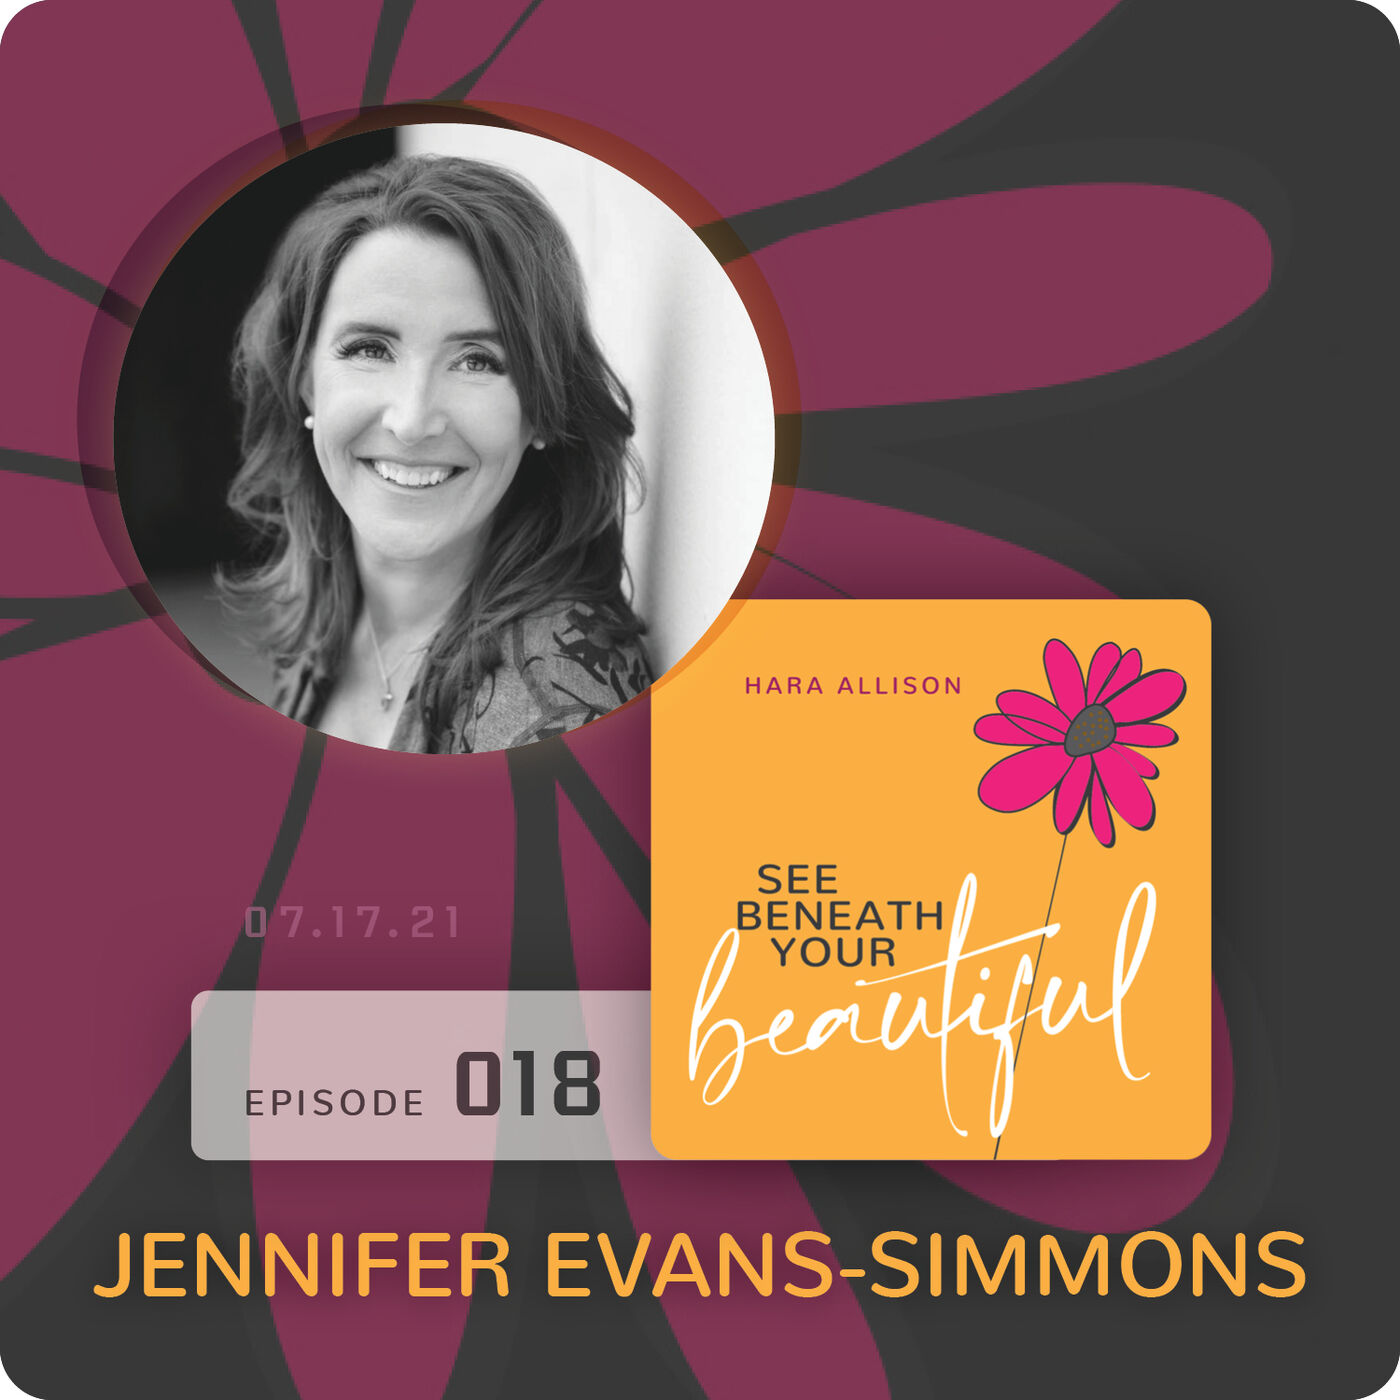 018. Jennifer Evans discusses becoming the Brady bunch, marrying a so nice bad boy, being an alpha and an introvert, bird watching, gardening, watching her hustle, living the dream with a fairy tale ending